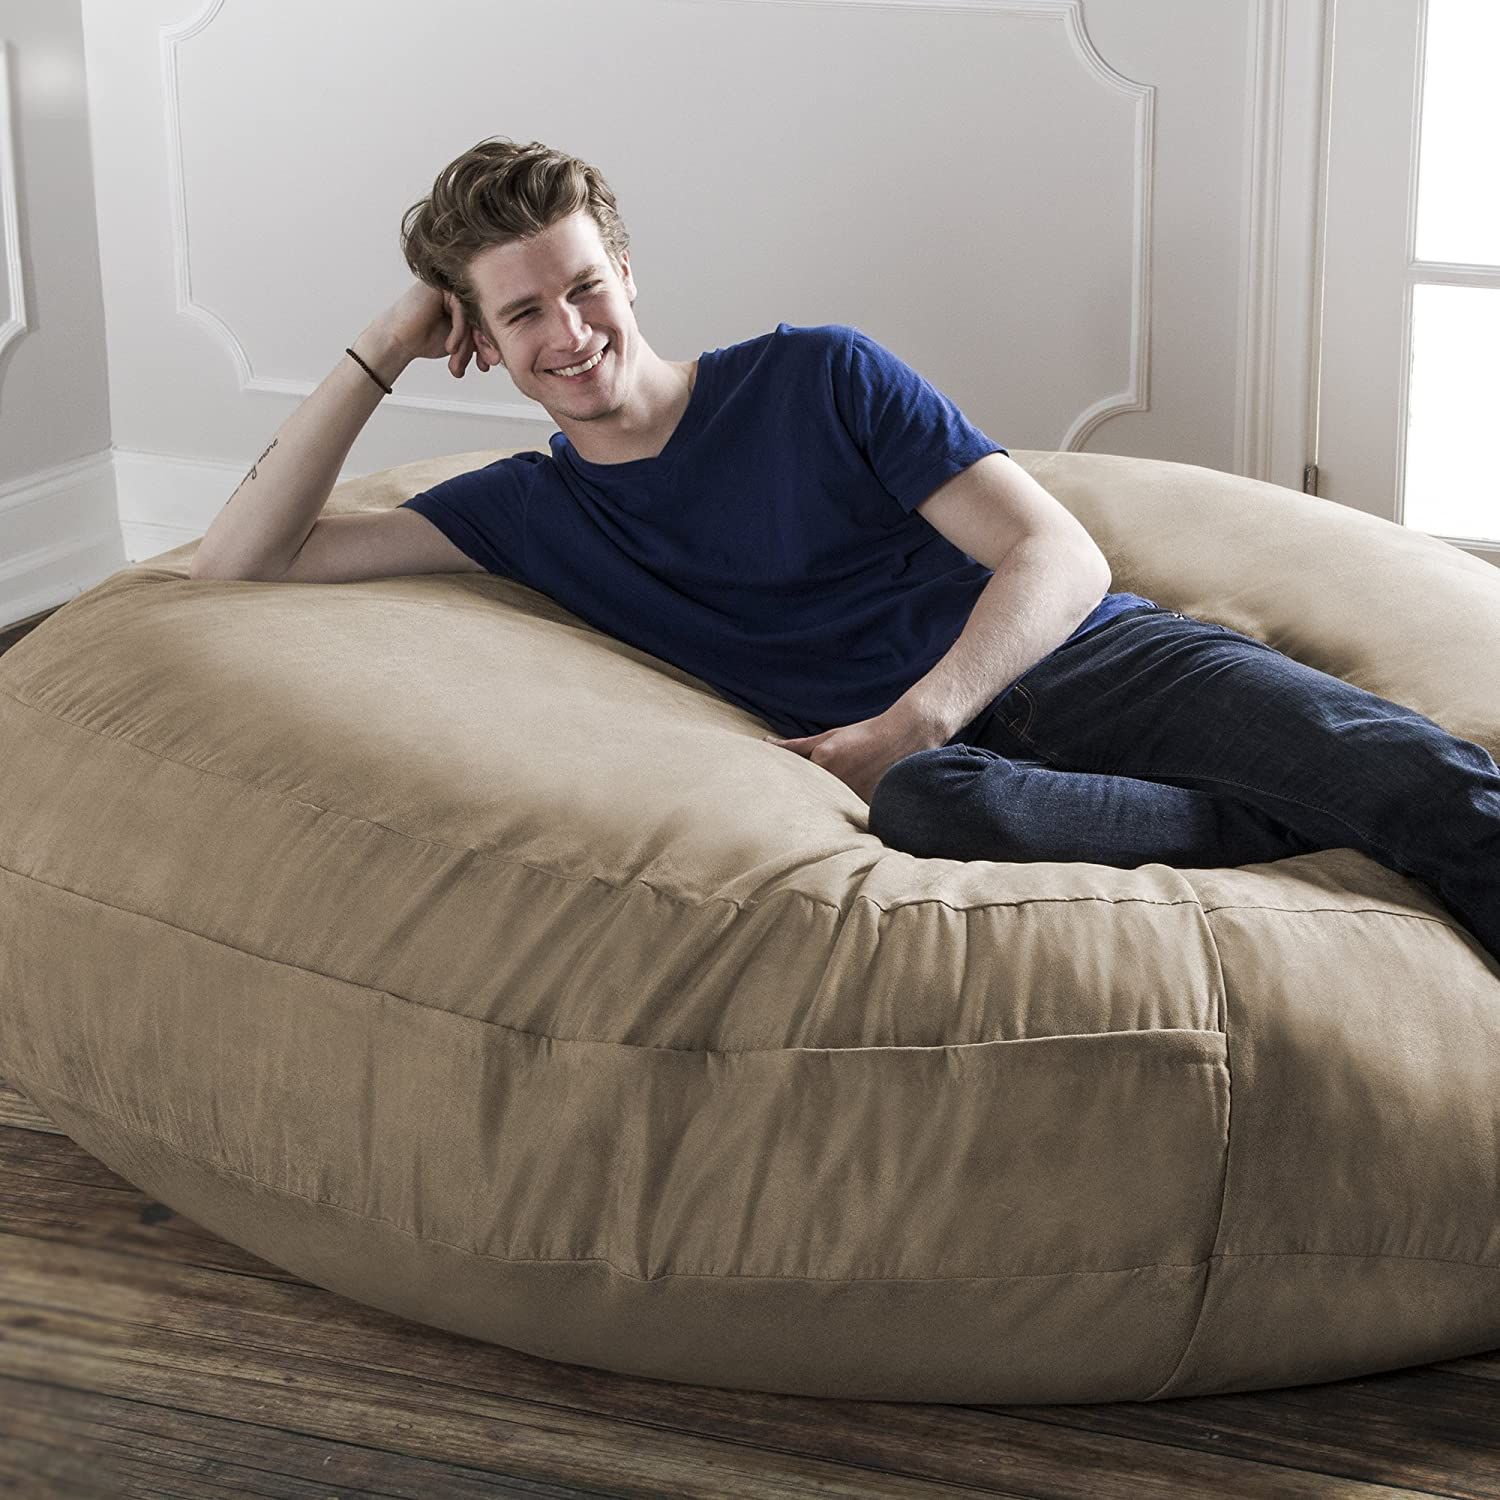 Amazon Jaxx 6 Foot Cocoon Bean Bag Chair for Adults